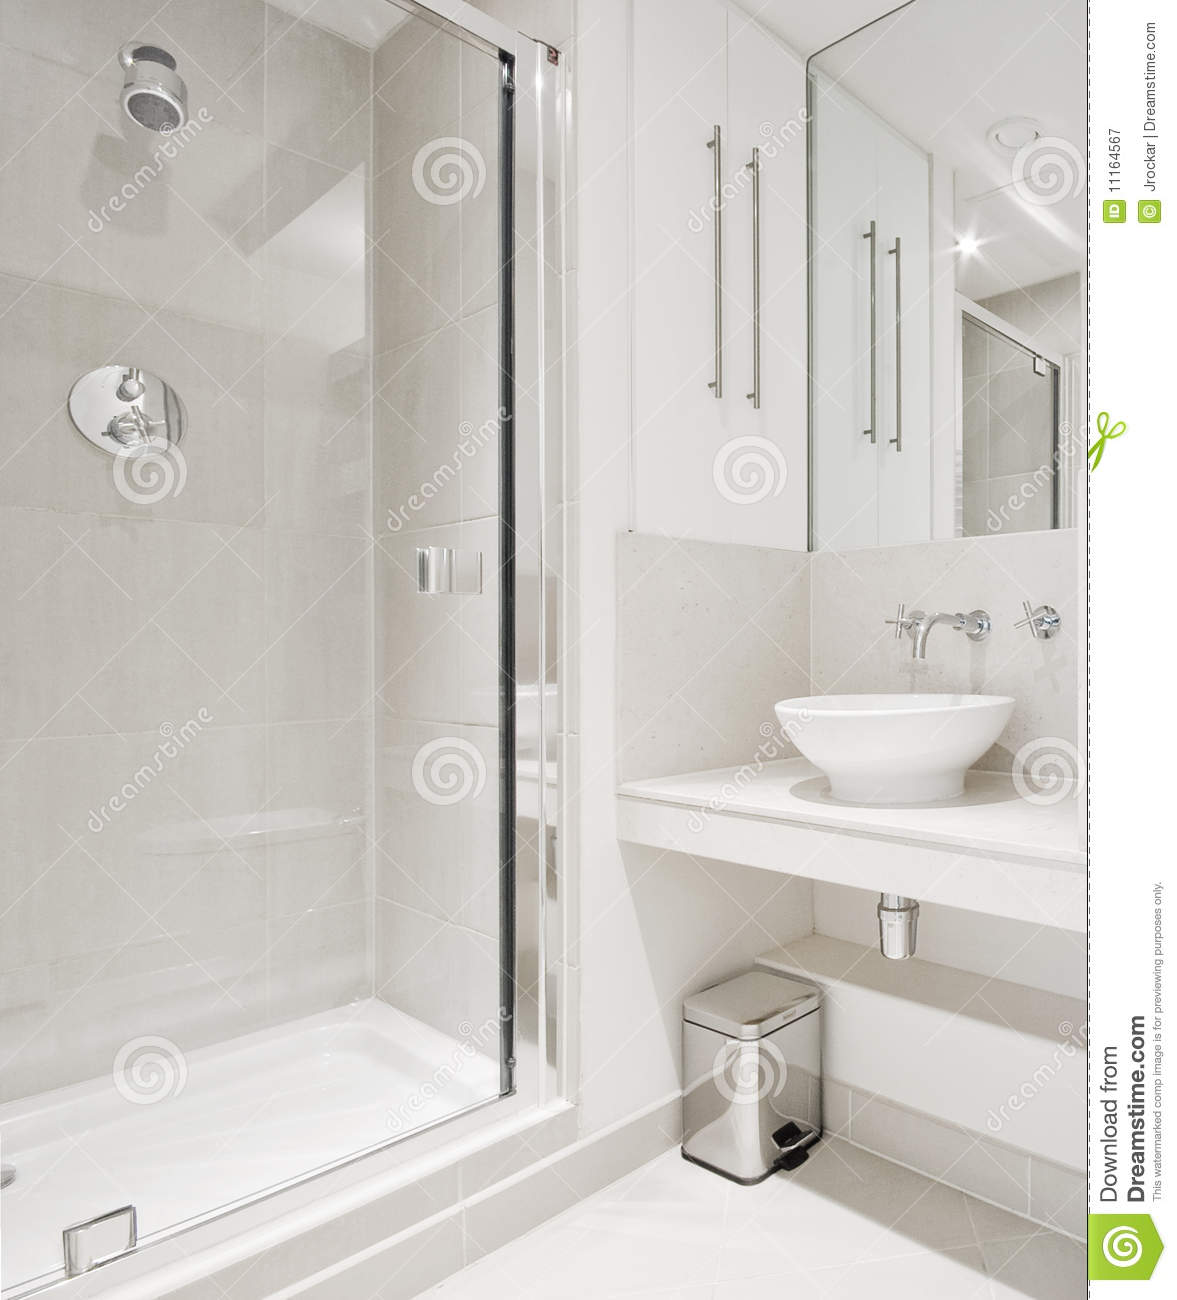 Modern bathroom with corner shower royalty free stock photography image 11164567 Bathroom tile showers